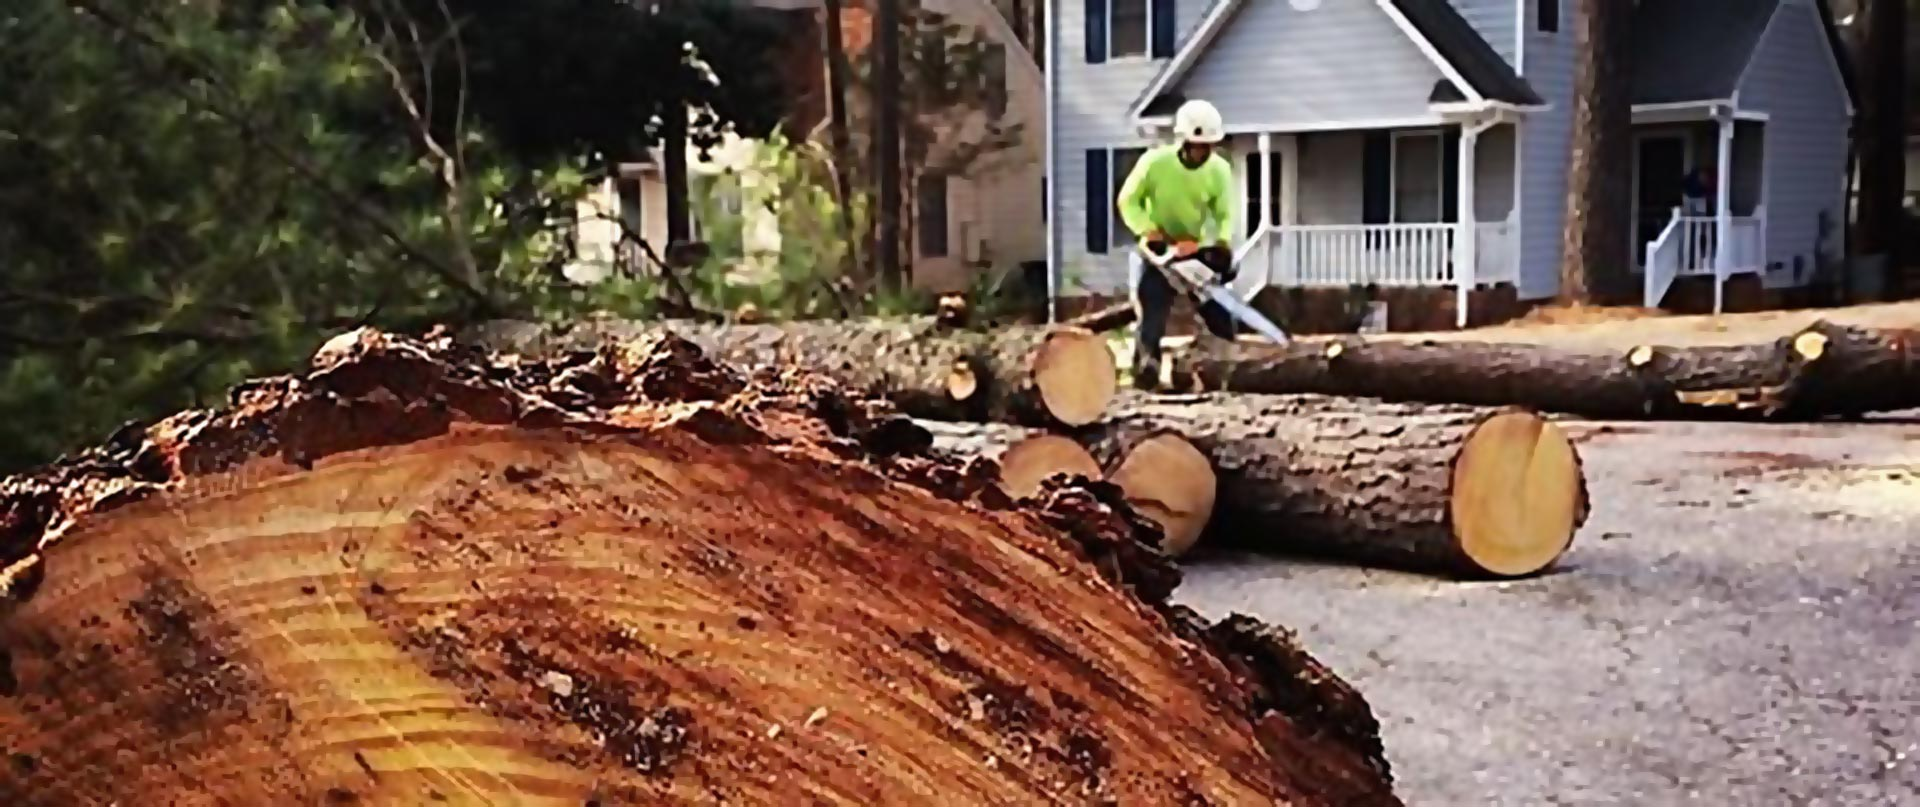 logs in street arbormax tree service